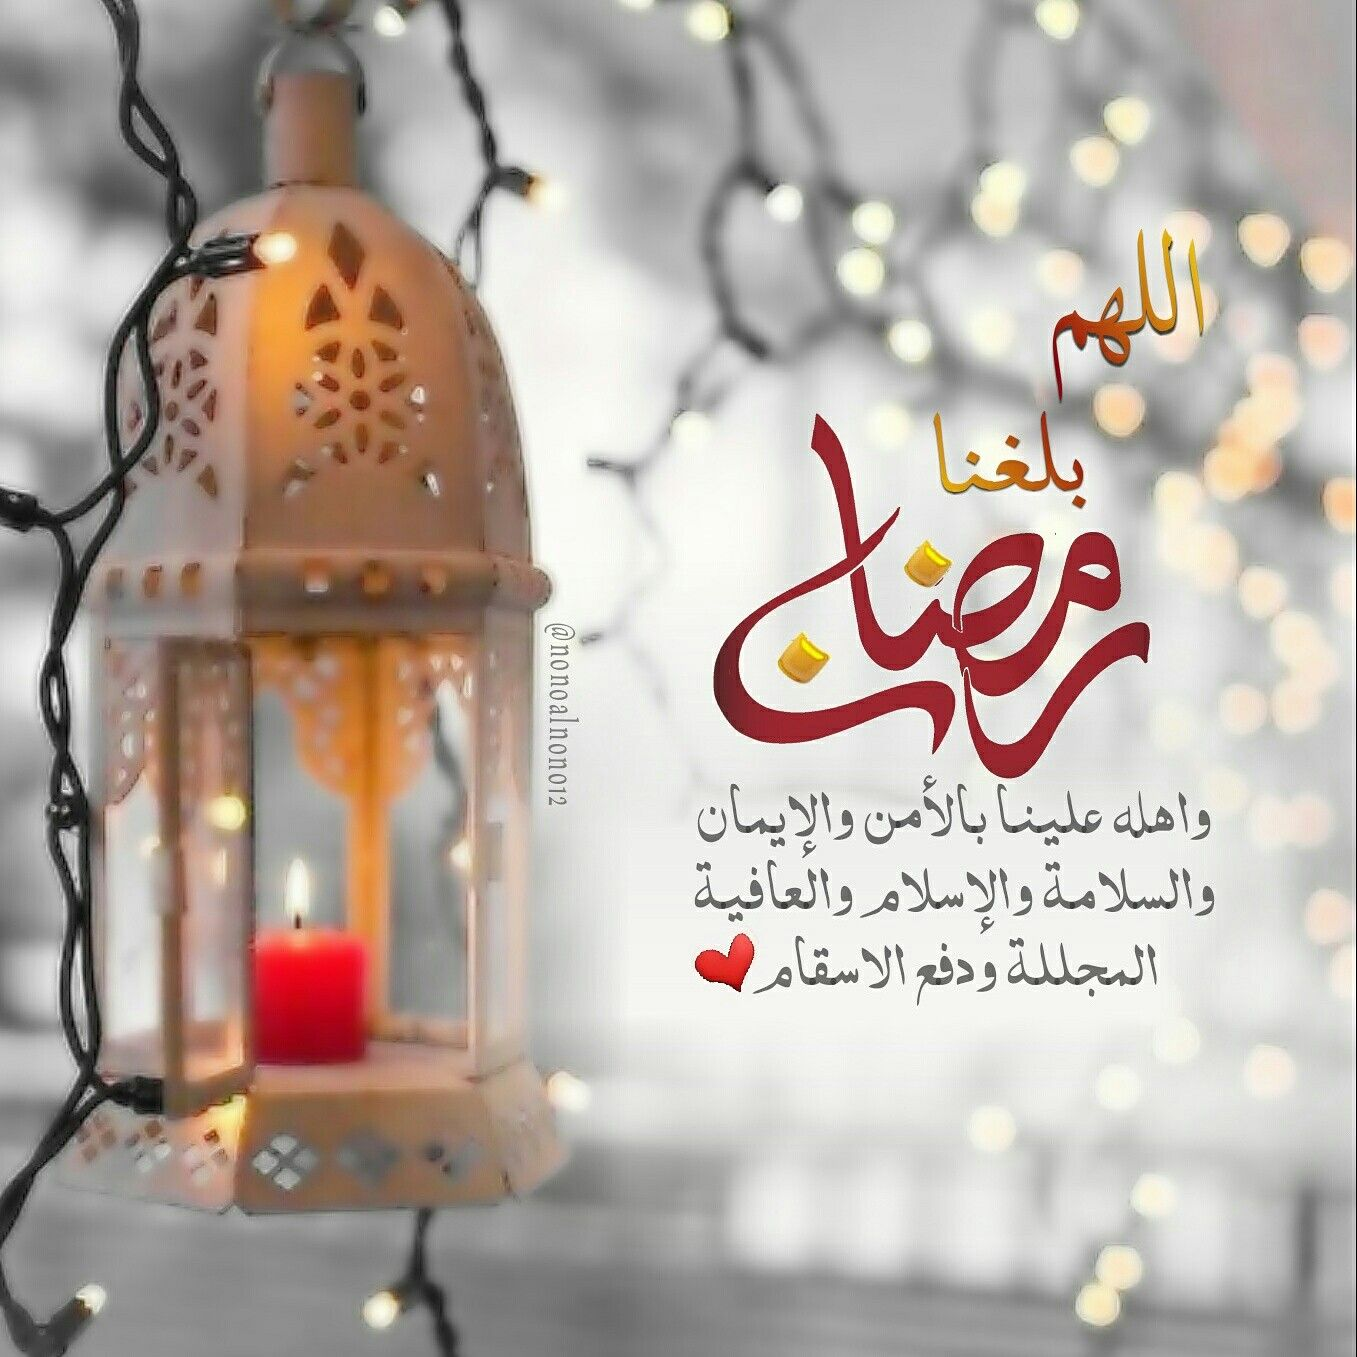 اللهم بلغنا رمضان Ramadan Lantern Ramadan Images Ramadan Greetings